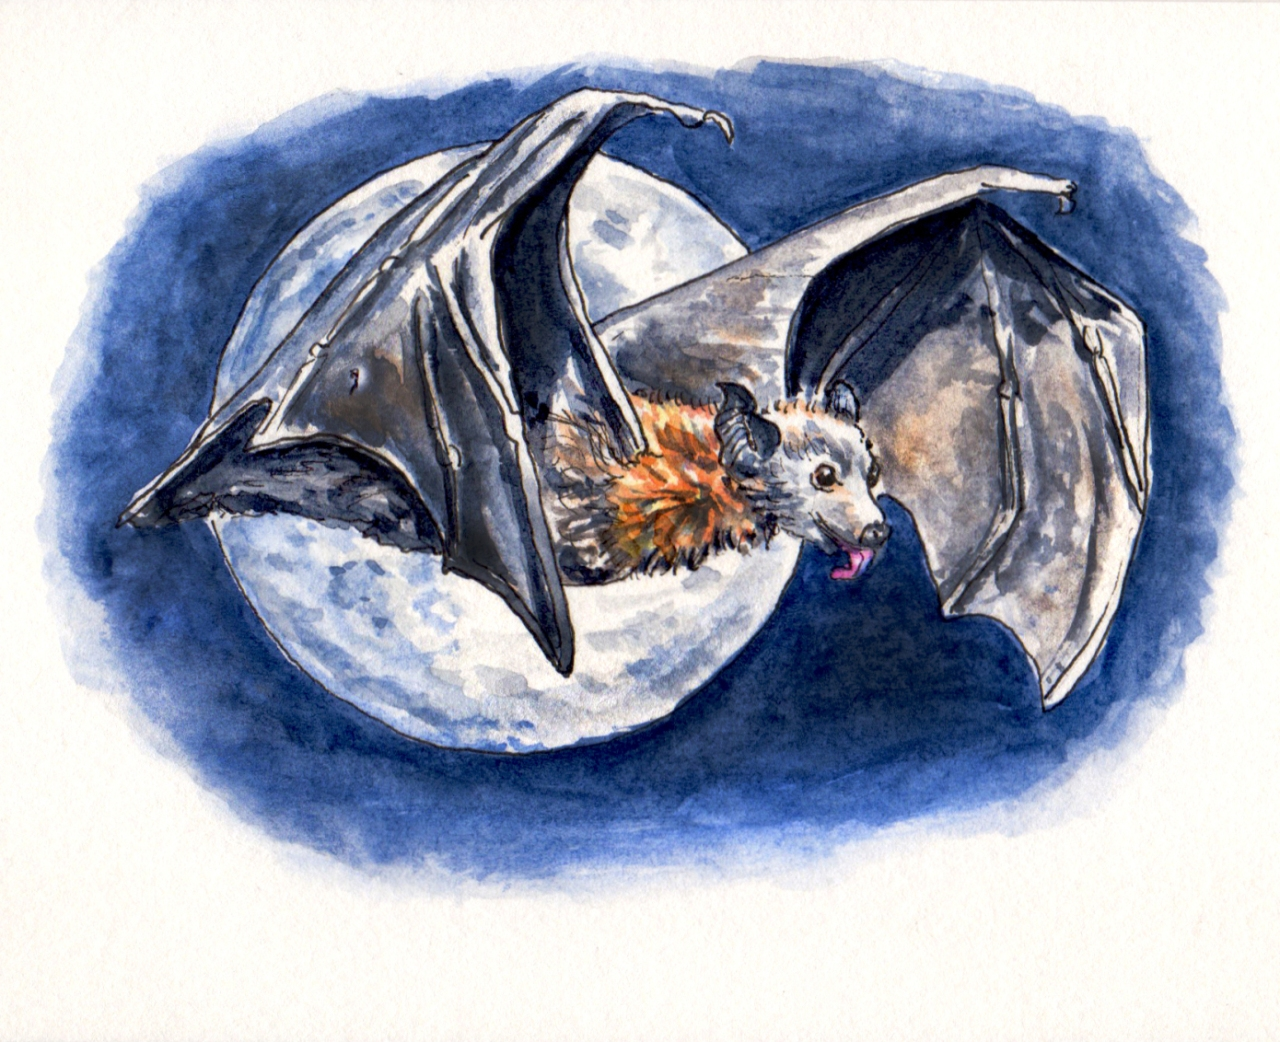 day-27-full-moon-madness-bat-in-front-of-moon-watercolor